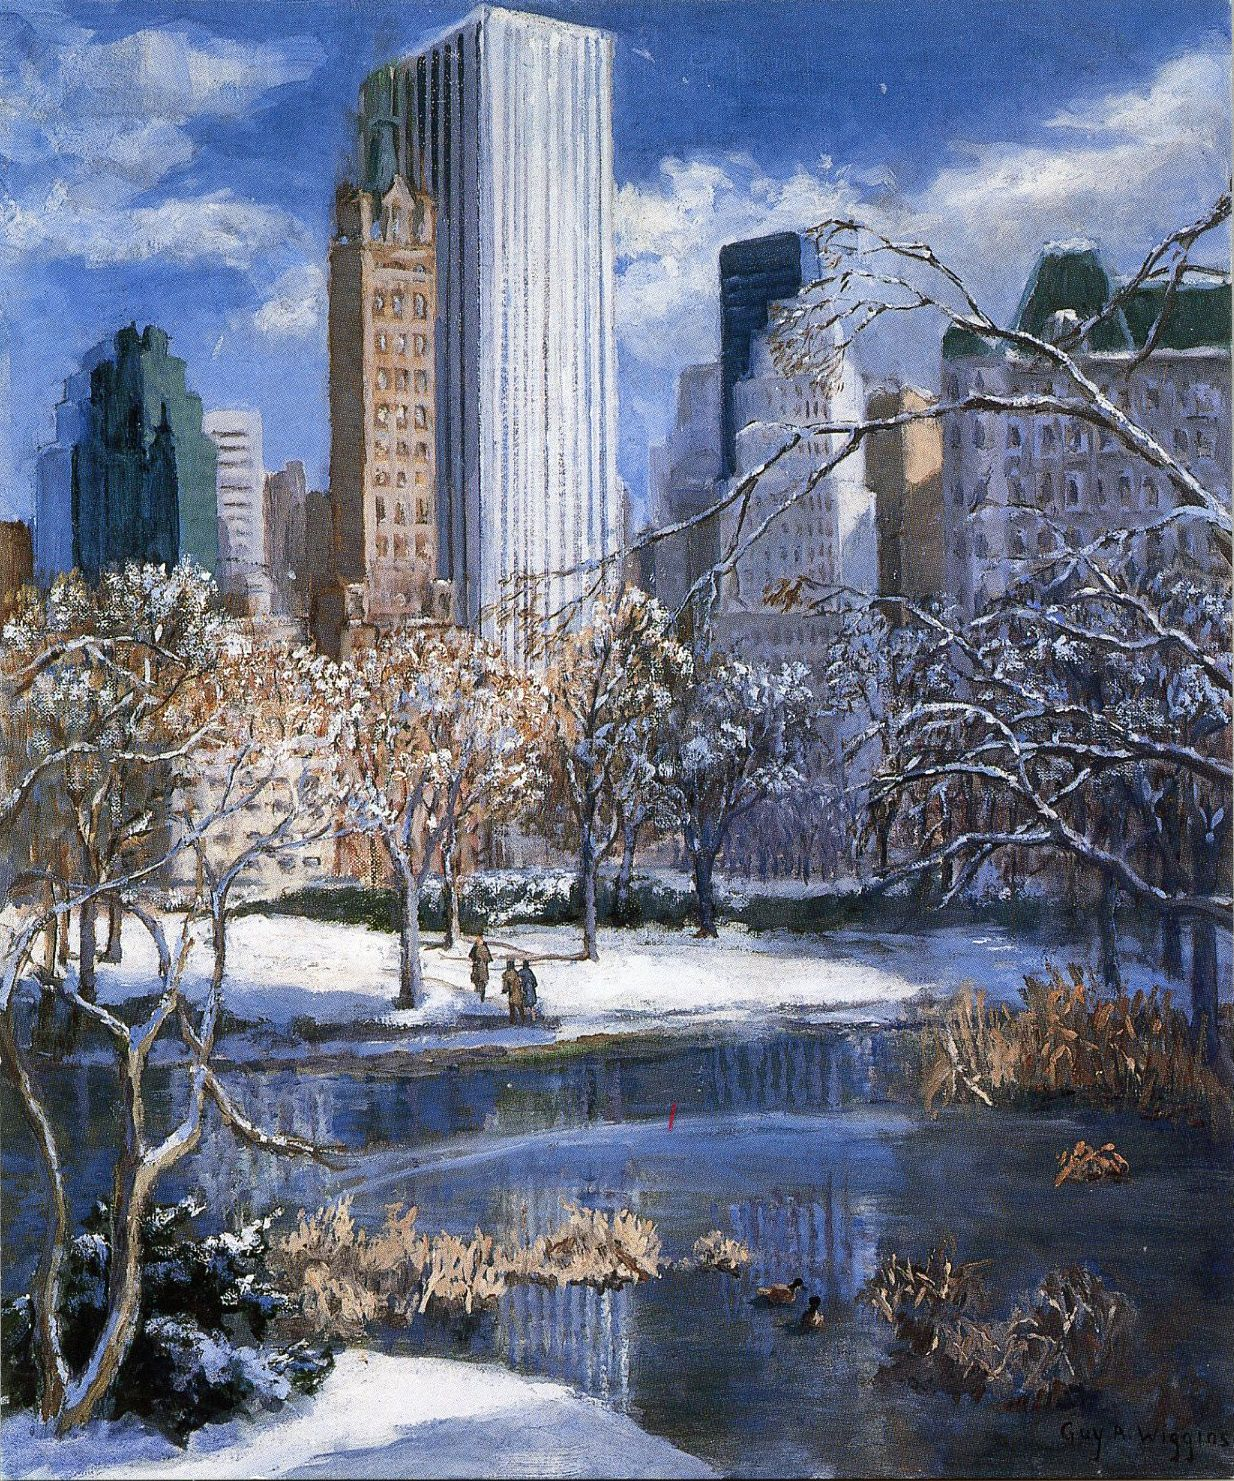 Cetral Park: Guy Arthur Wiggins, Central Park In Winter, Oil On Canvas